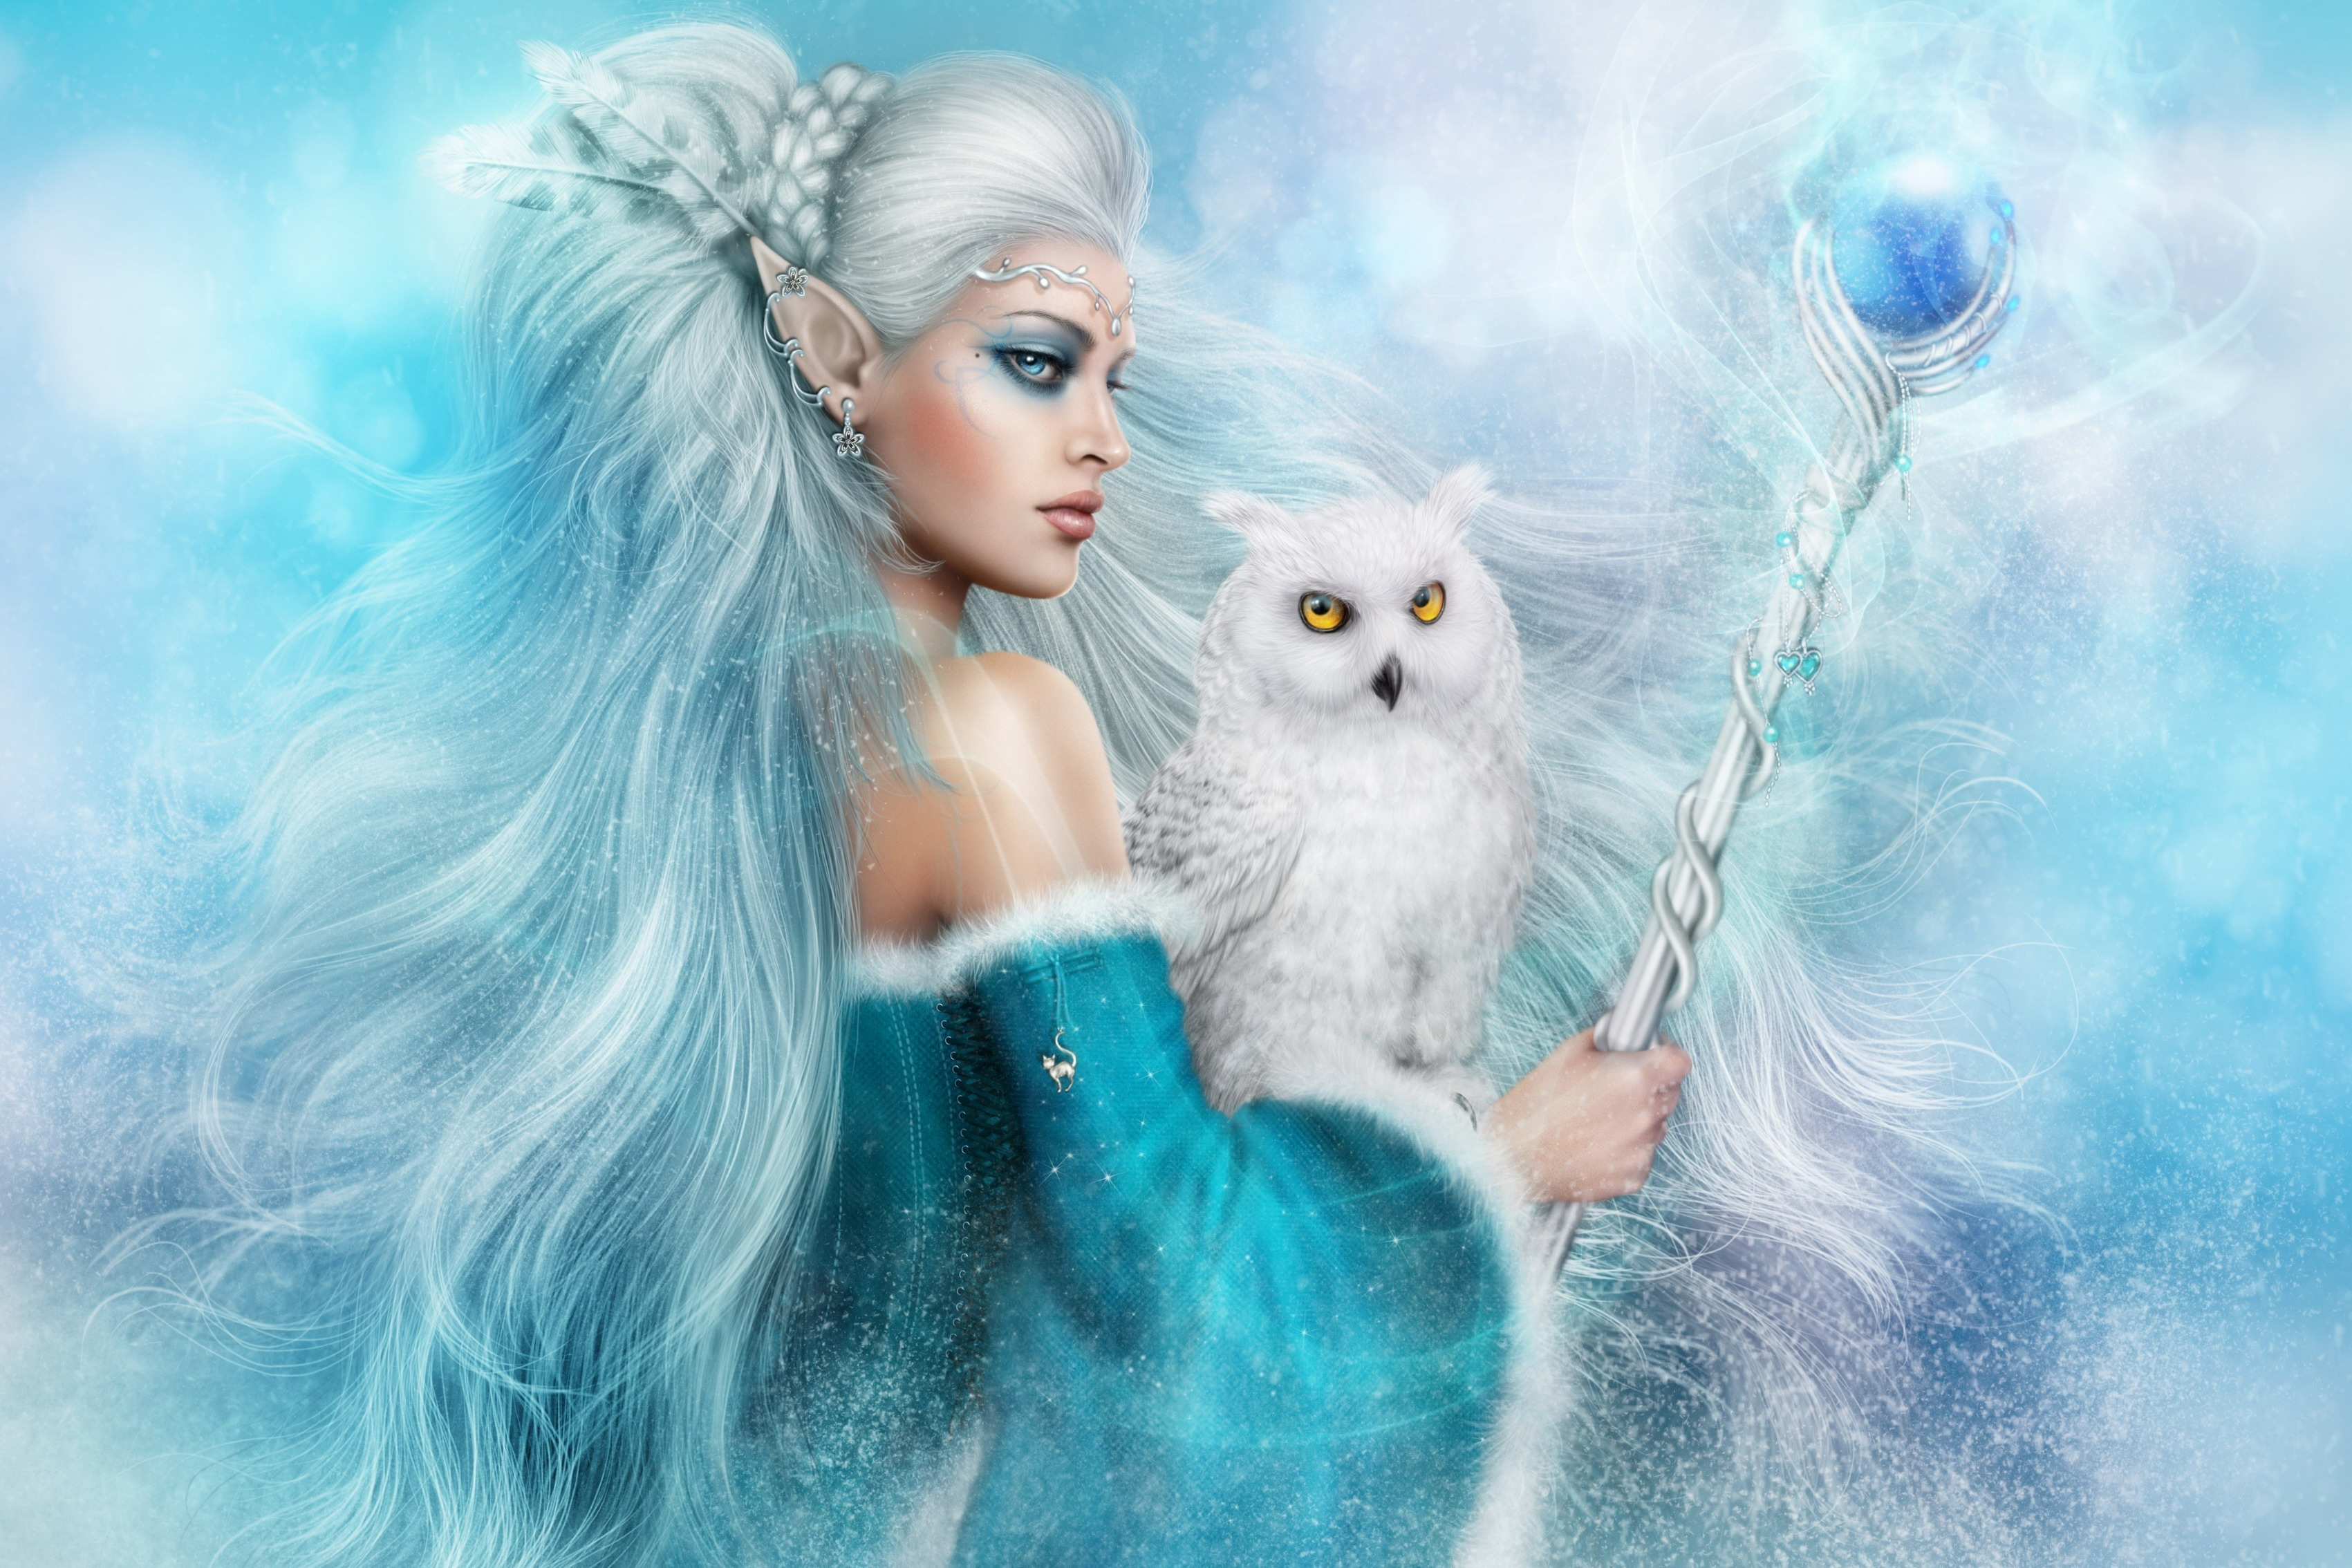 Beautiful Blond Woman Blue Magic Night Stock Photo 97725698 ...